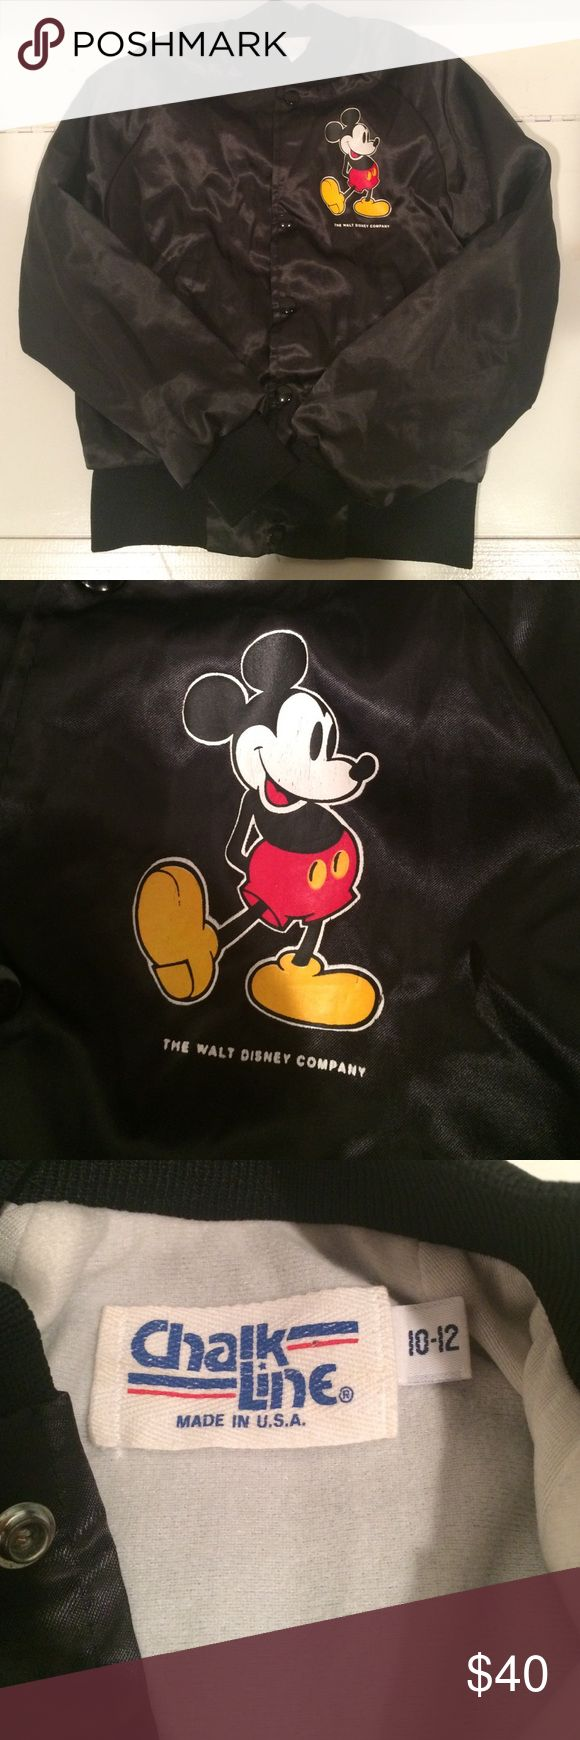 VTG RARE KIDS' MICKEY MOUSE BOMBER JACKET Cool kids' bomber jacket, size 10-12. Perfect vintage condition, authentic ChalkLine jacket. Vintage Jackets & Coats